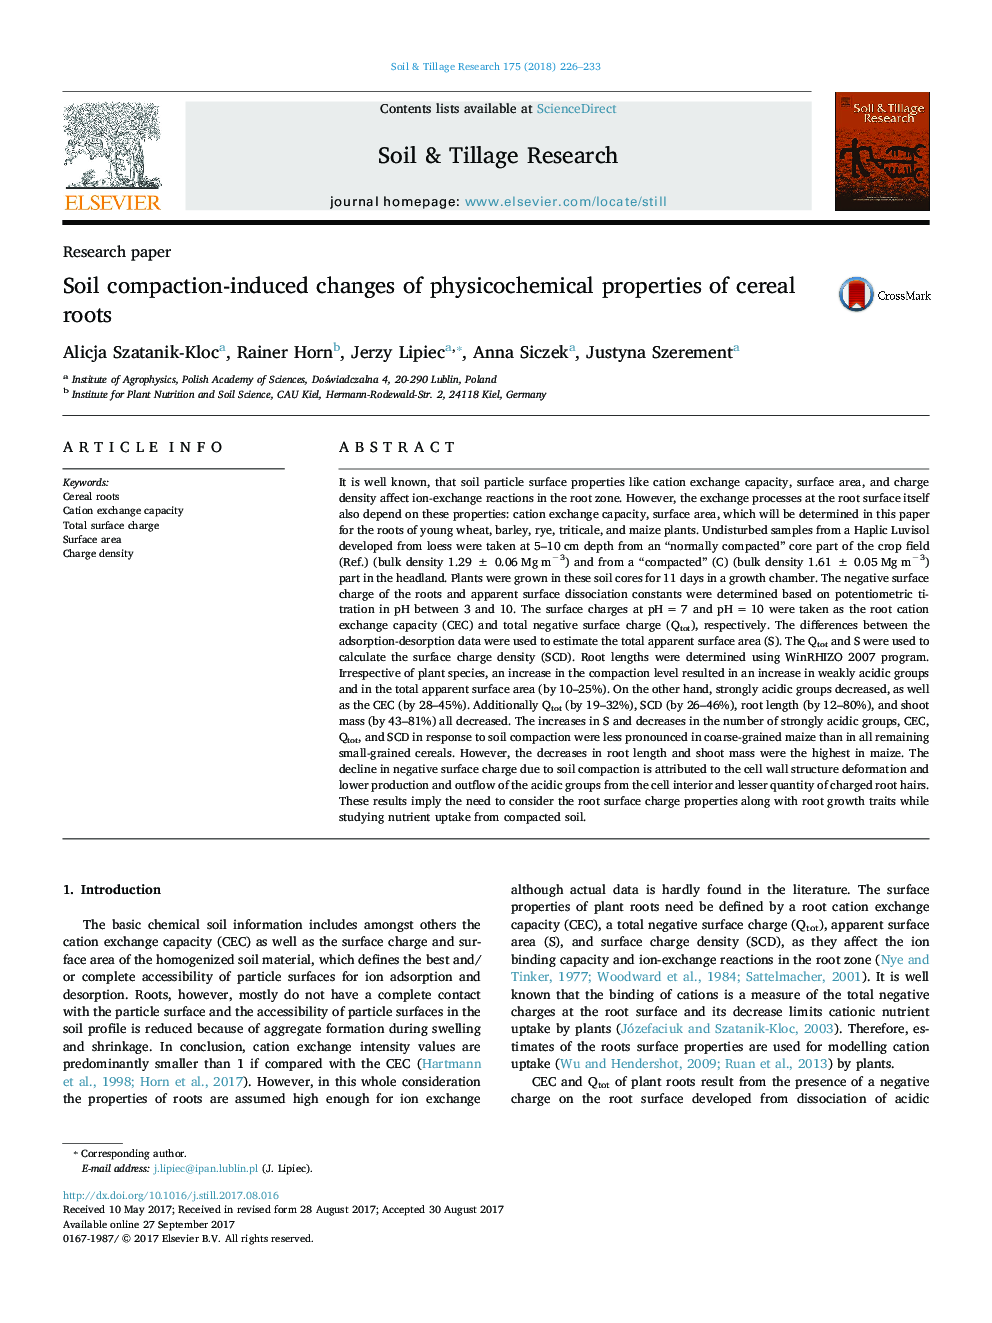 Research paperSoil compaction-induced changes of physicochemical properties of cereal roots